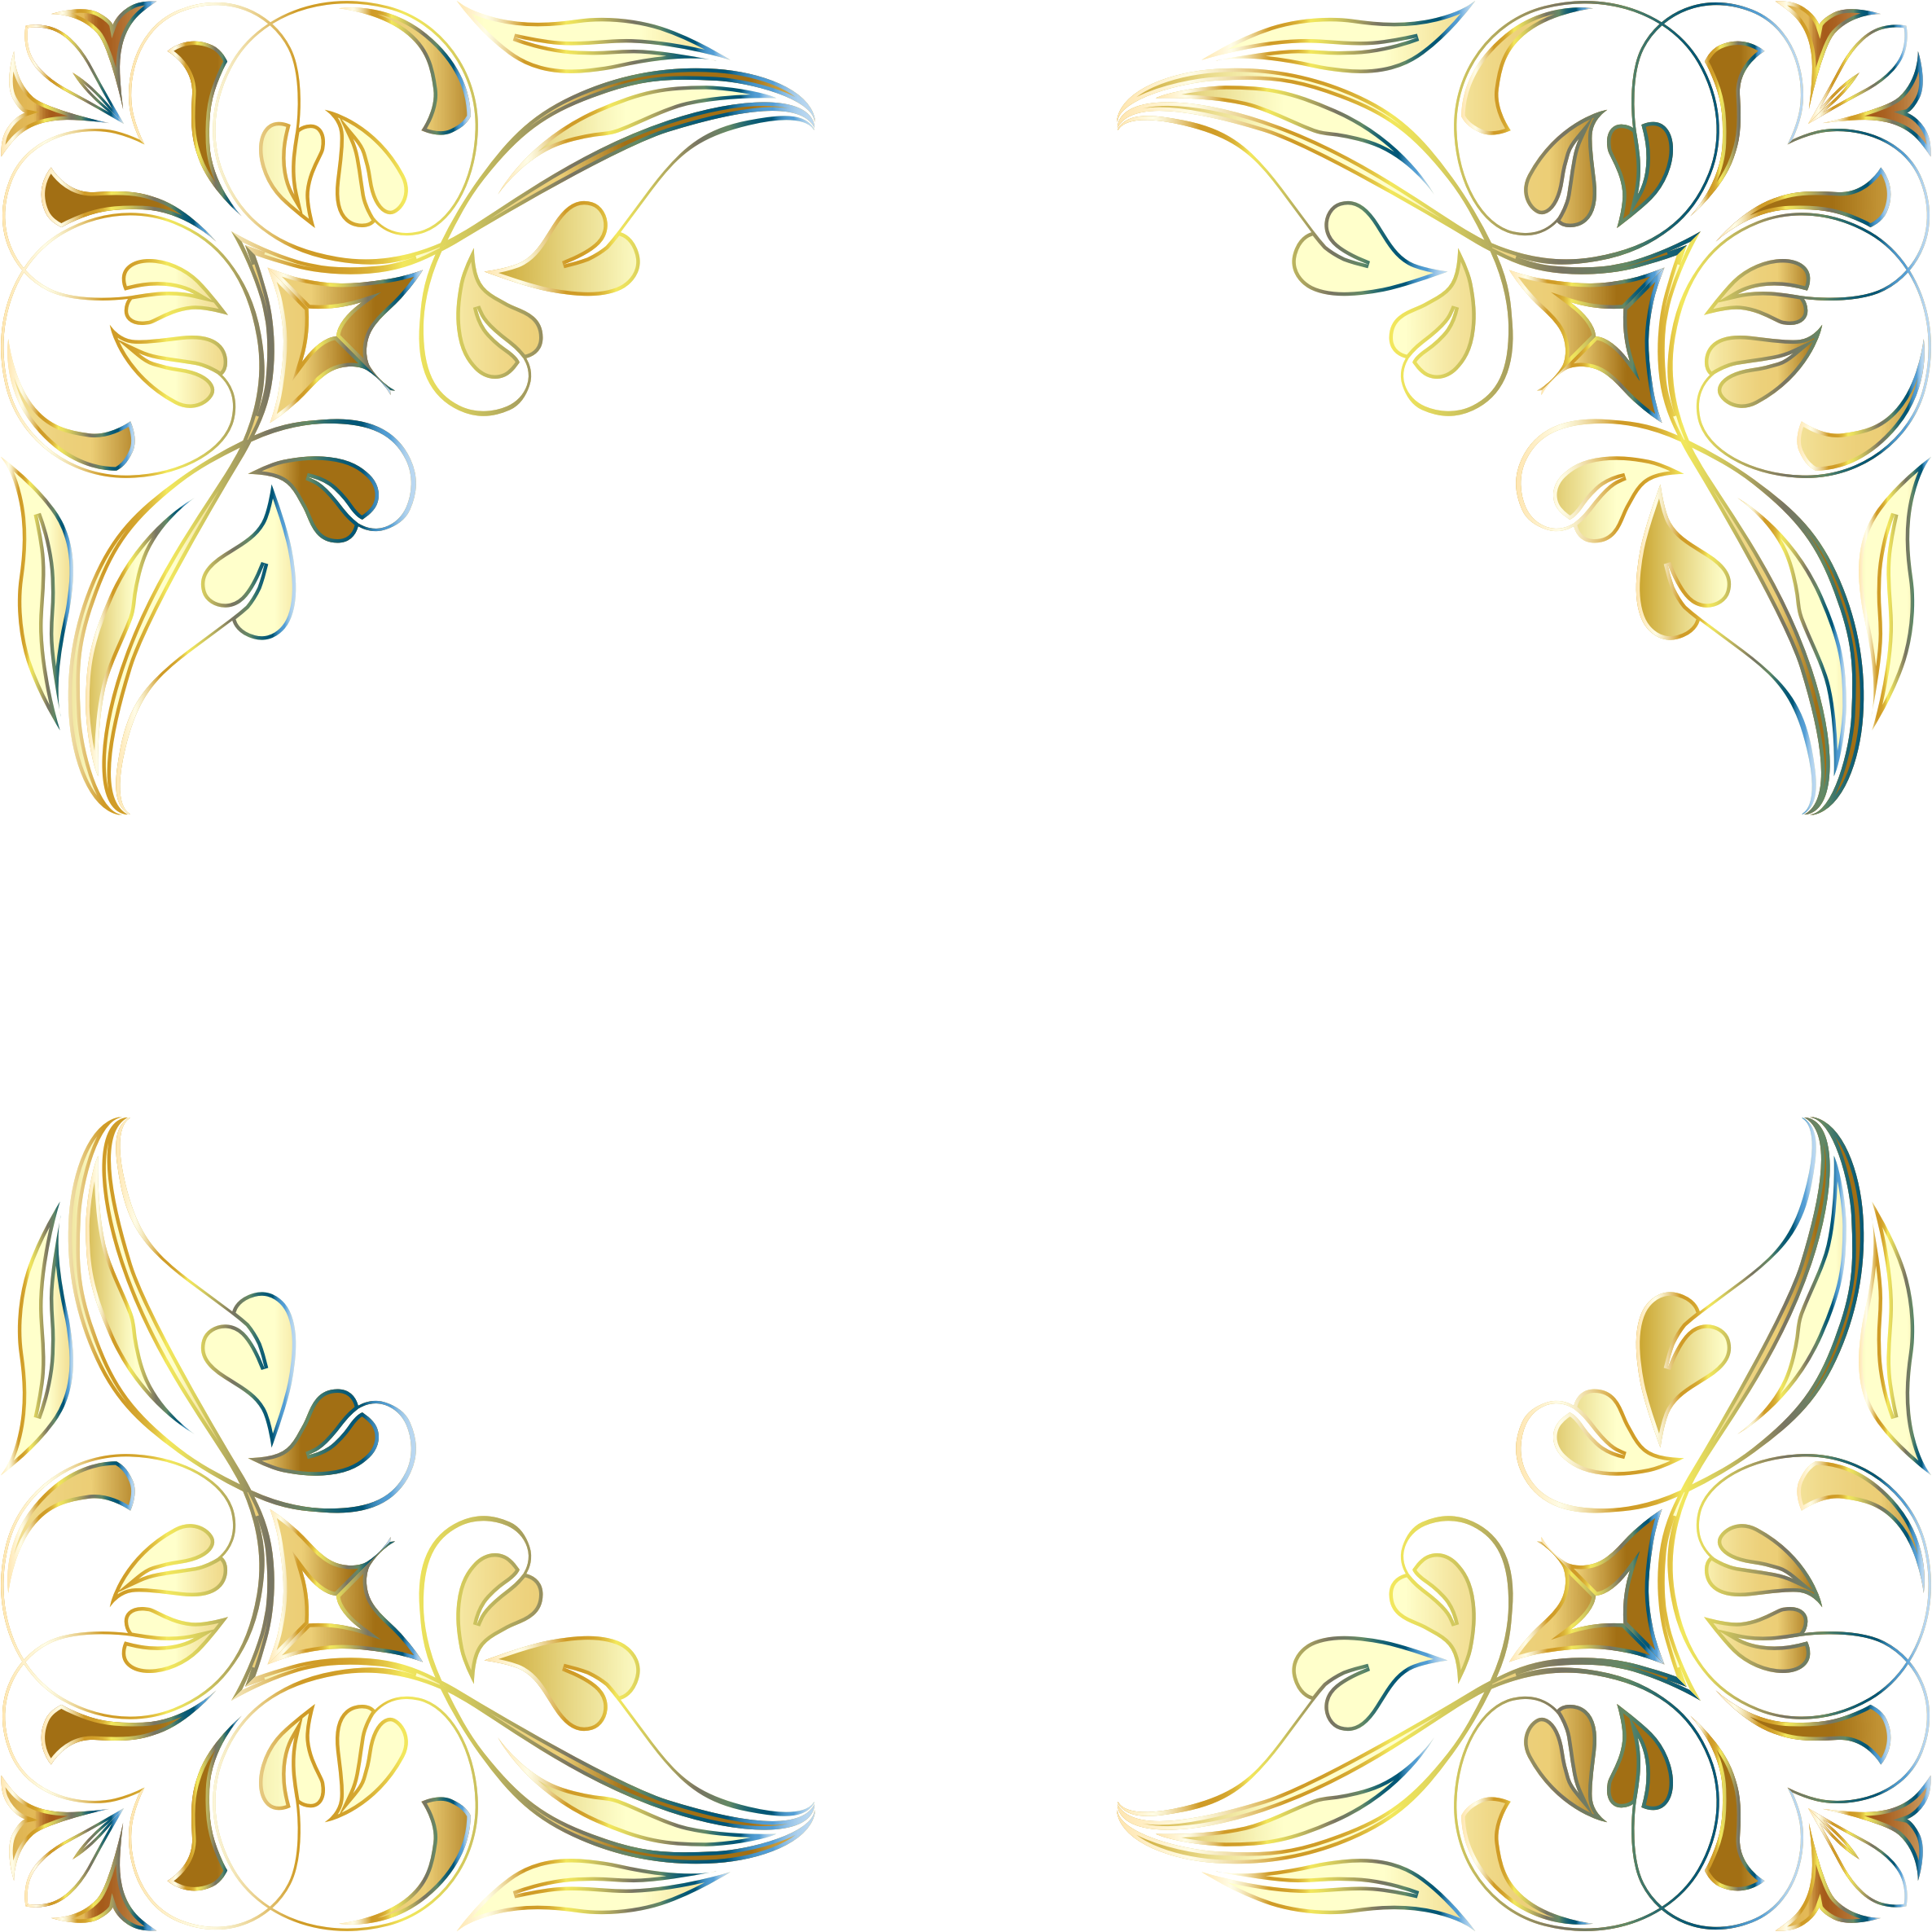 Floral Flourish Frame 7 Variation 3 by GDJ